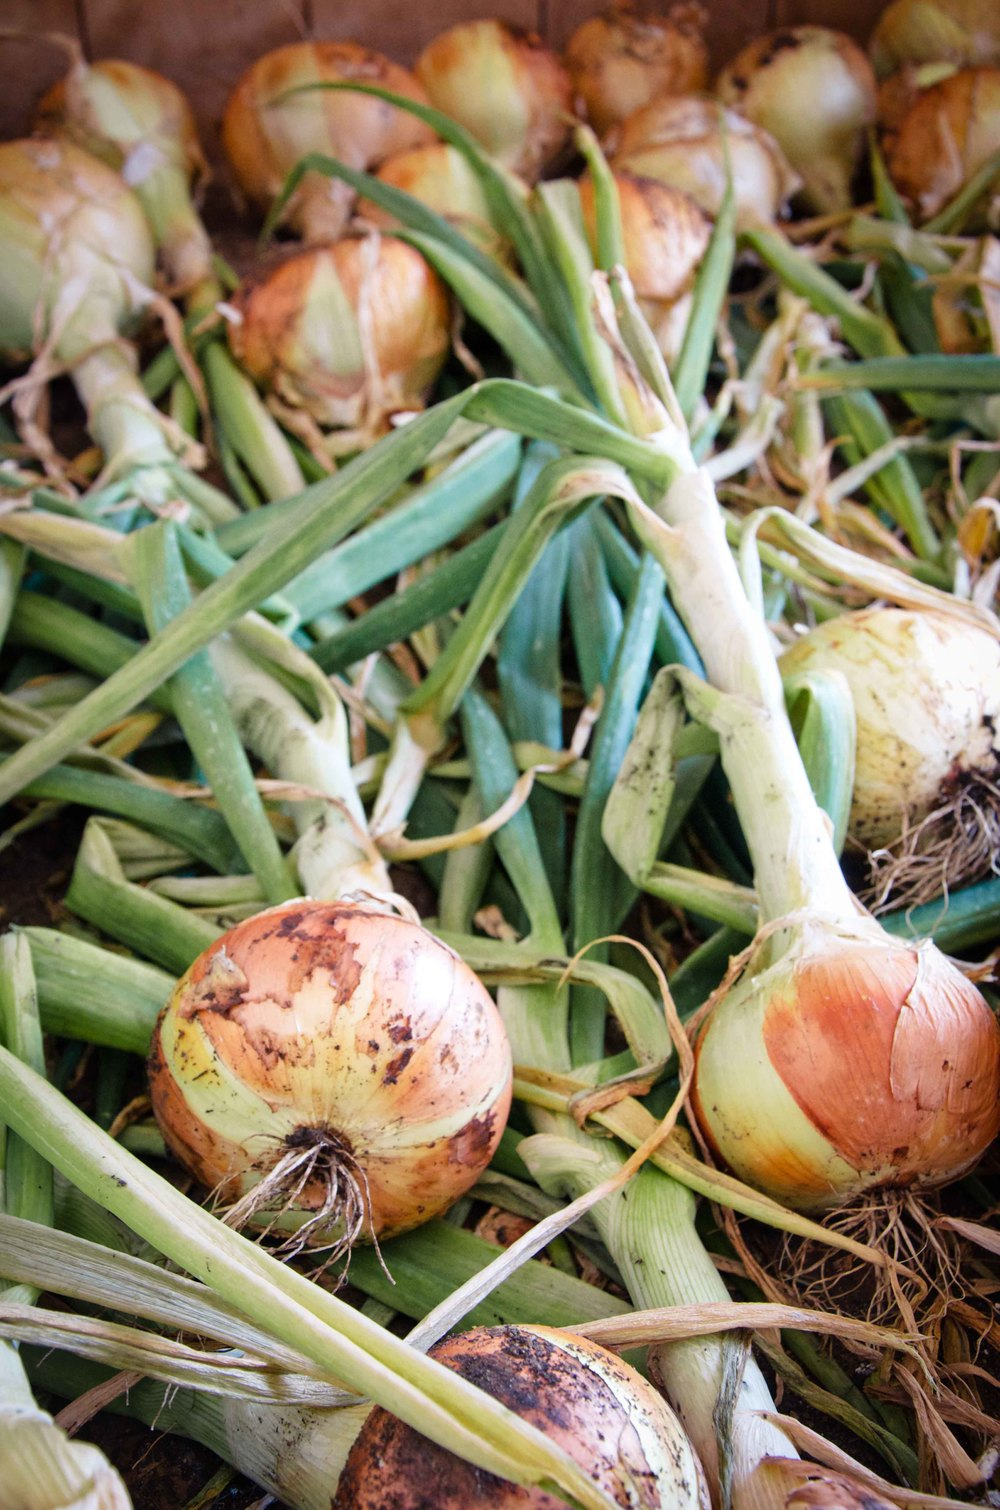 Onions curing after harvest.